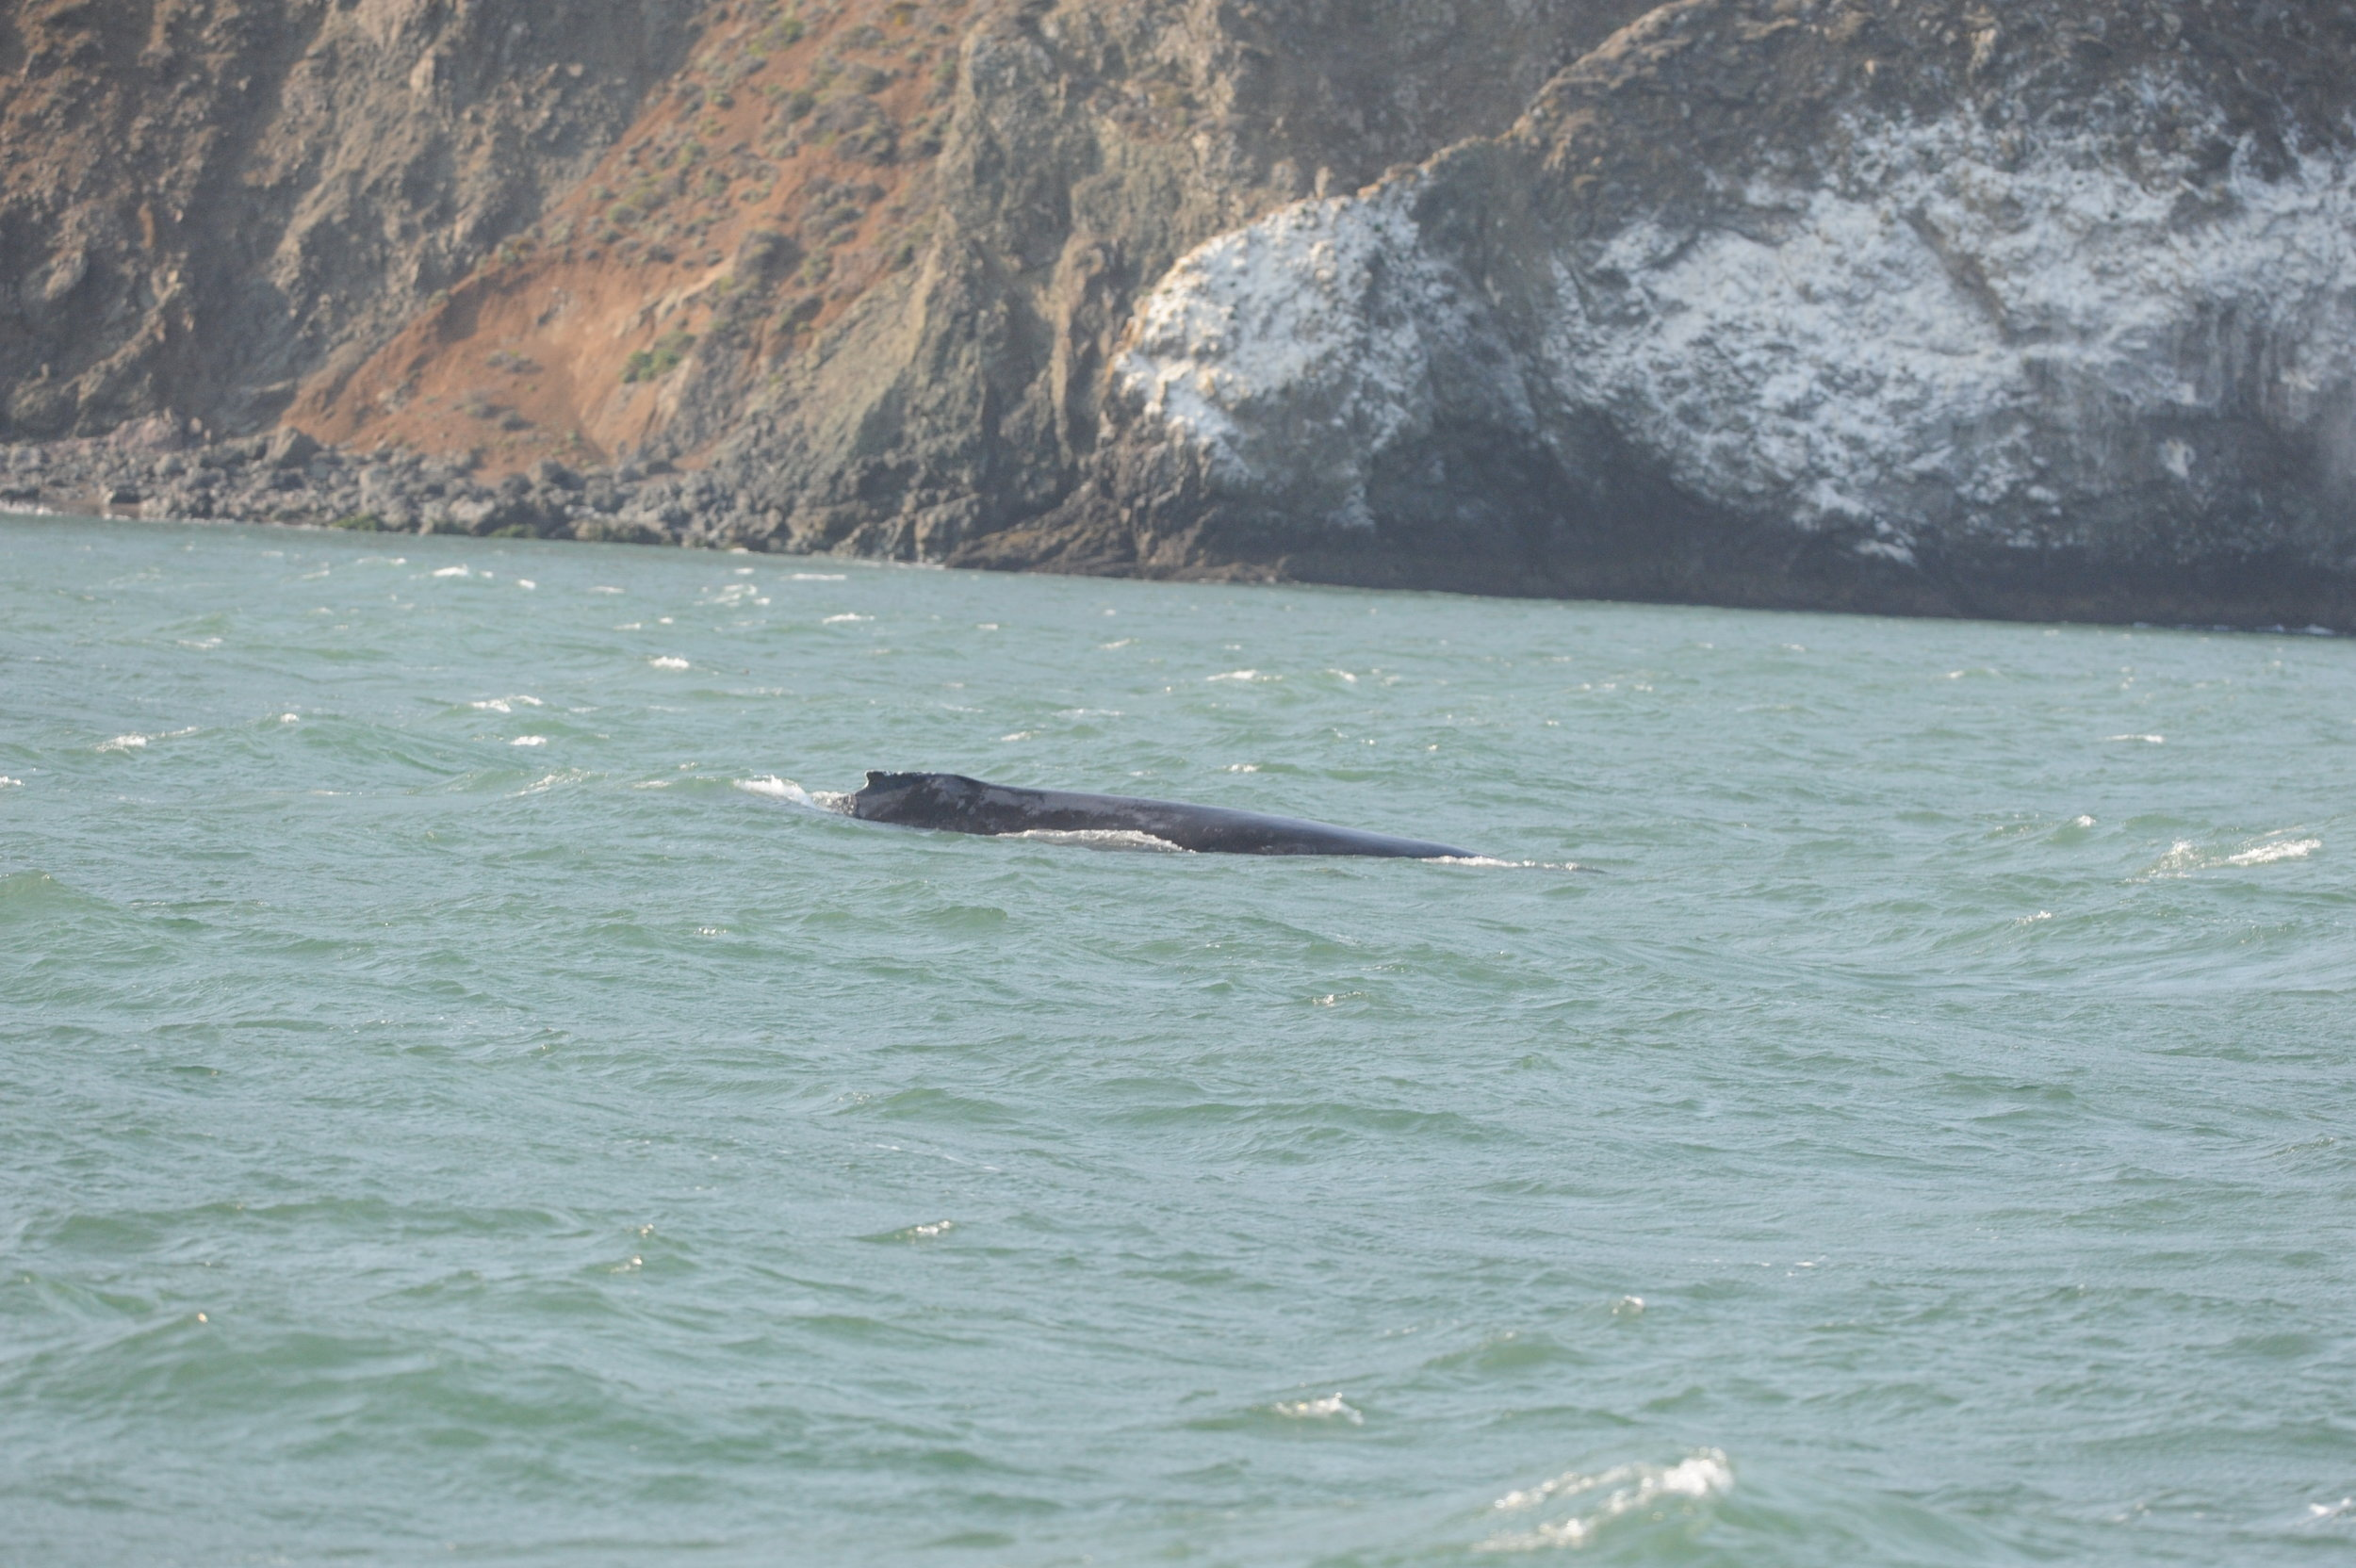 Humpback whale near Diablo Cove.